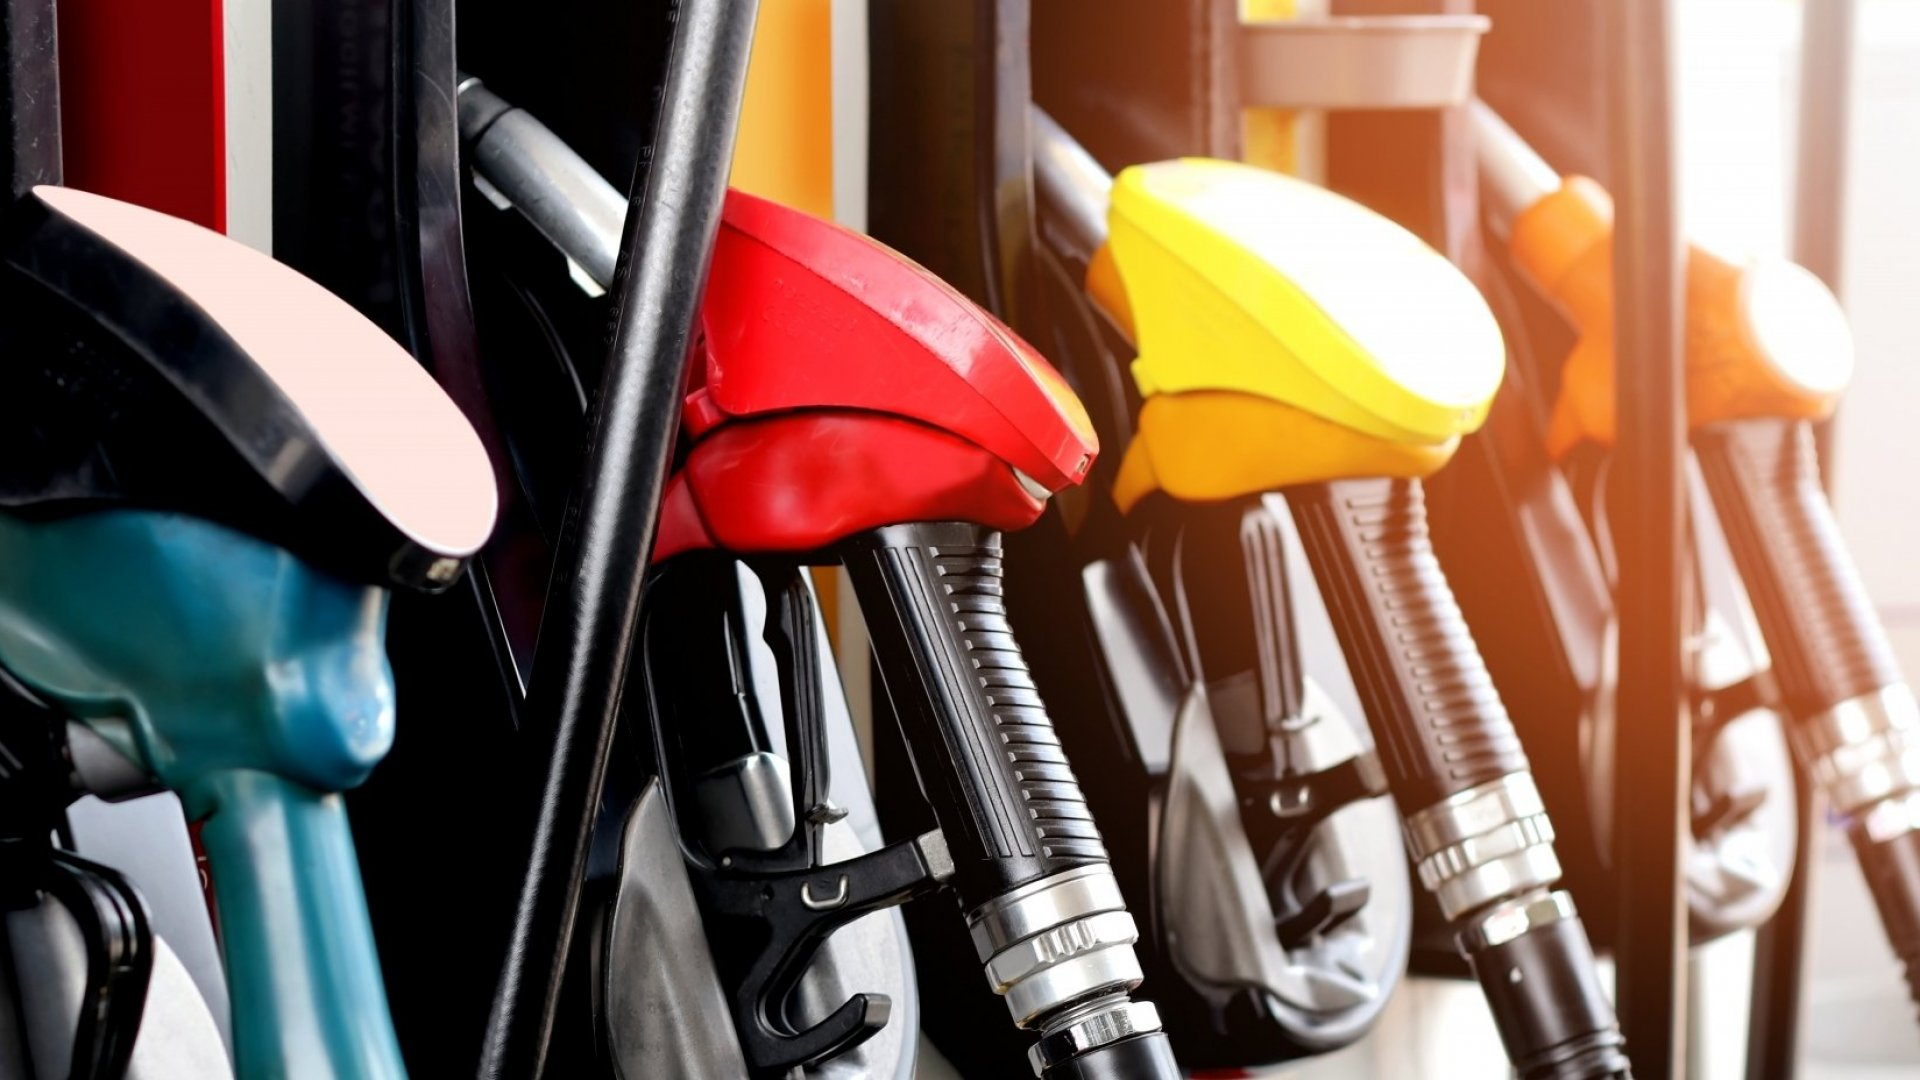 If You Pump Gas, Your Credit Card Numbers Could Be Stolen, Visa Warns